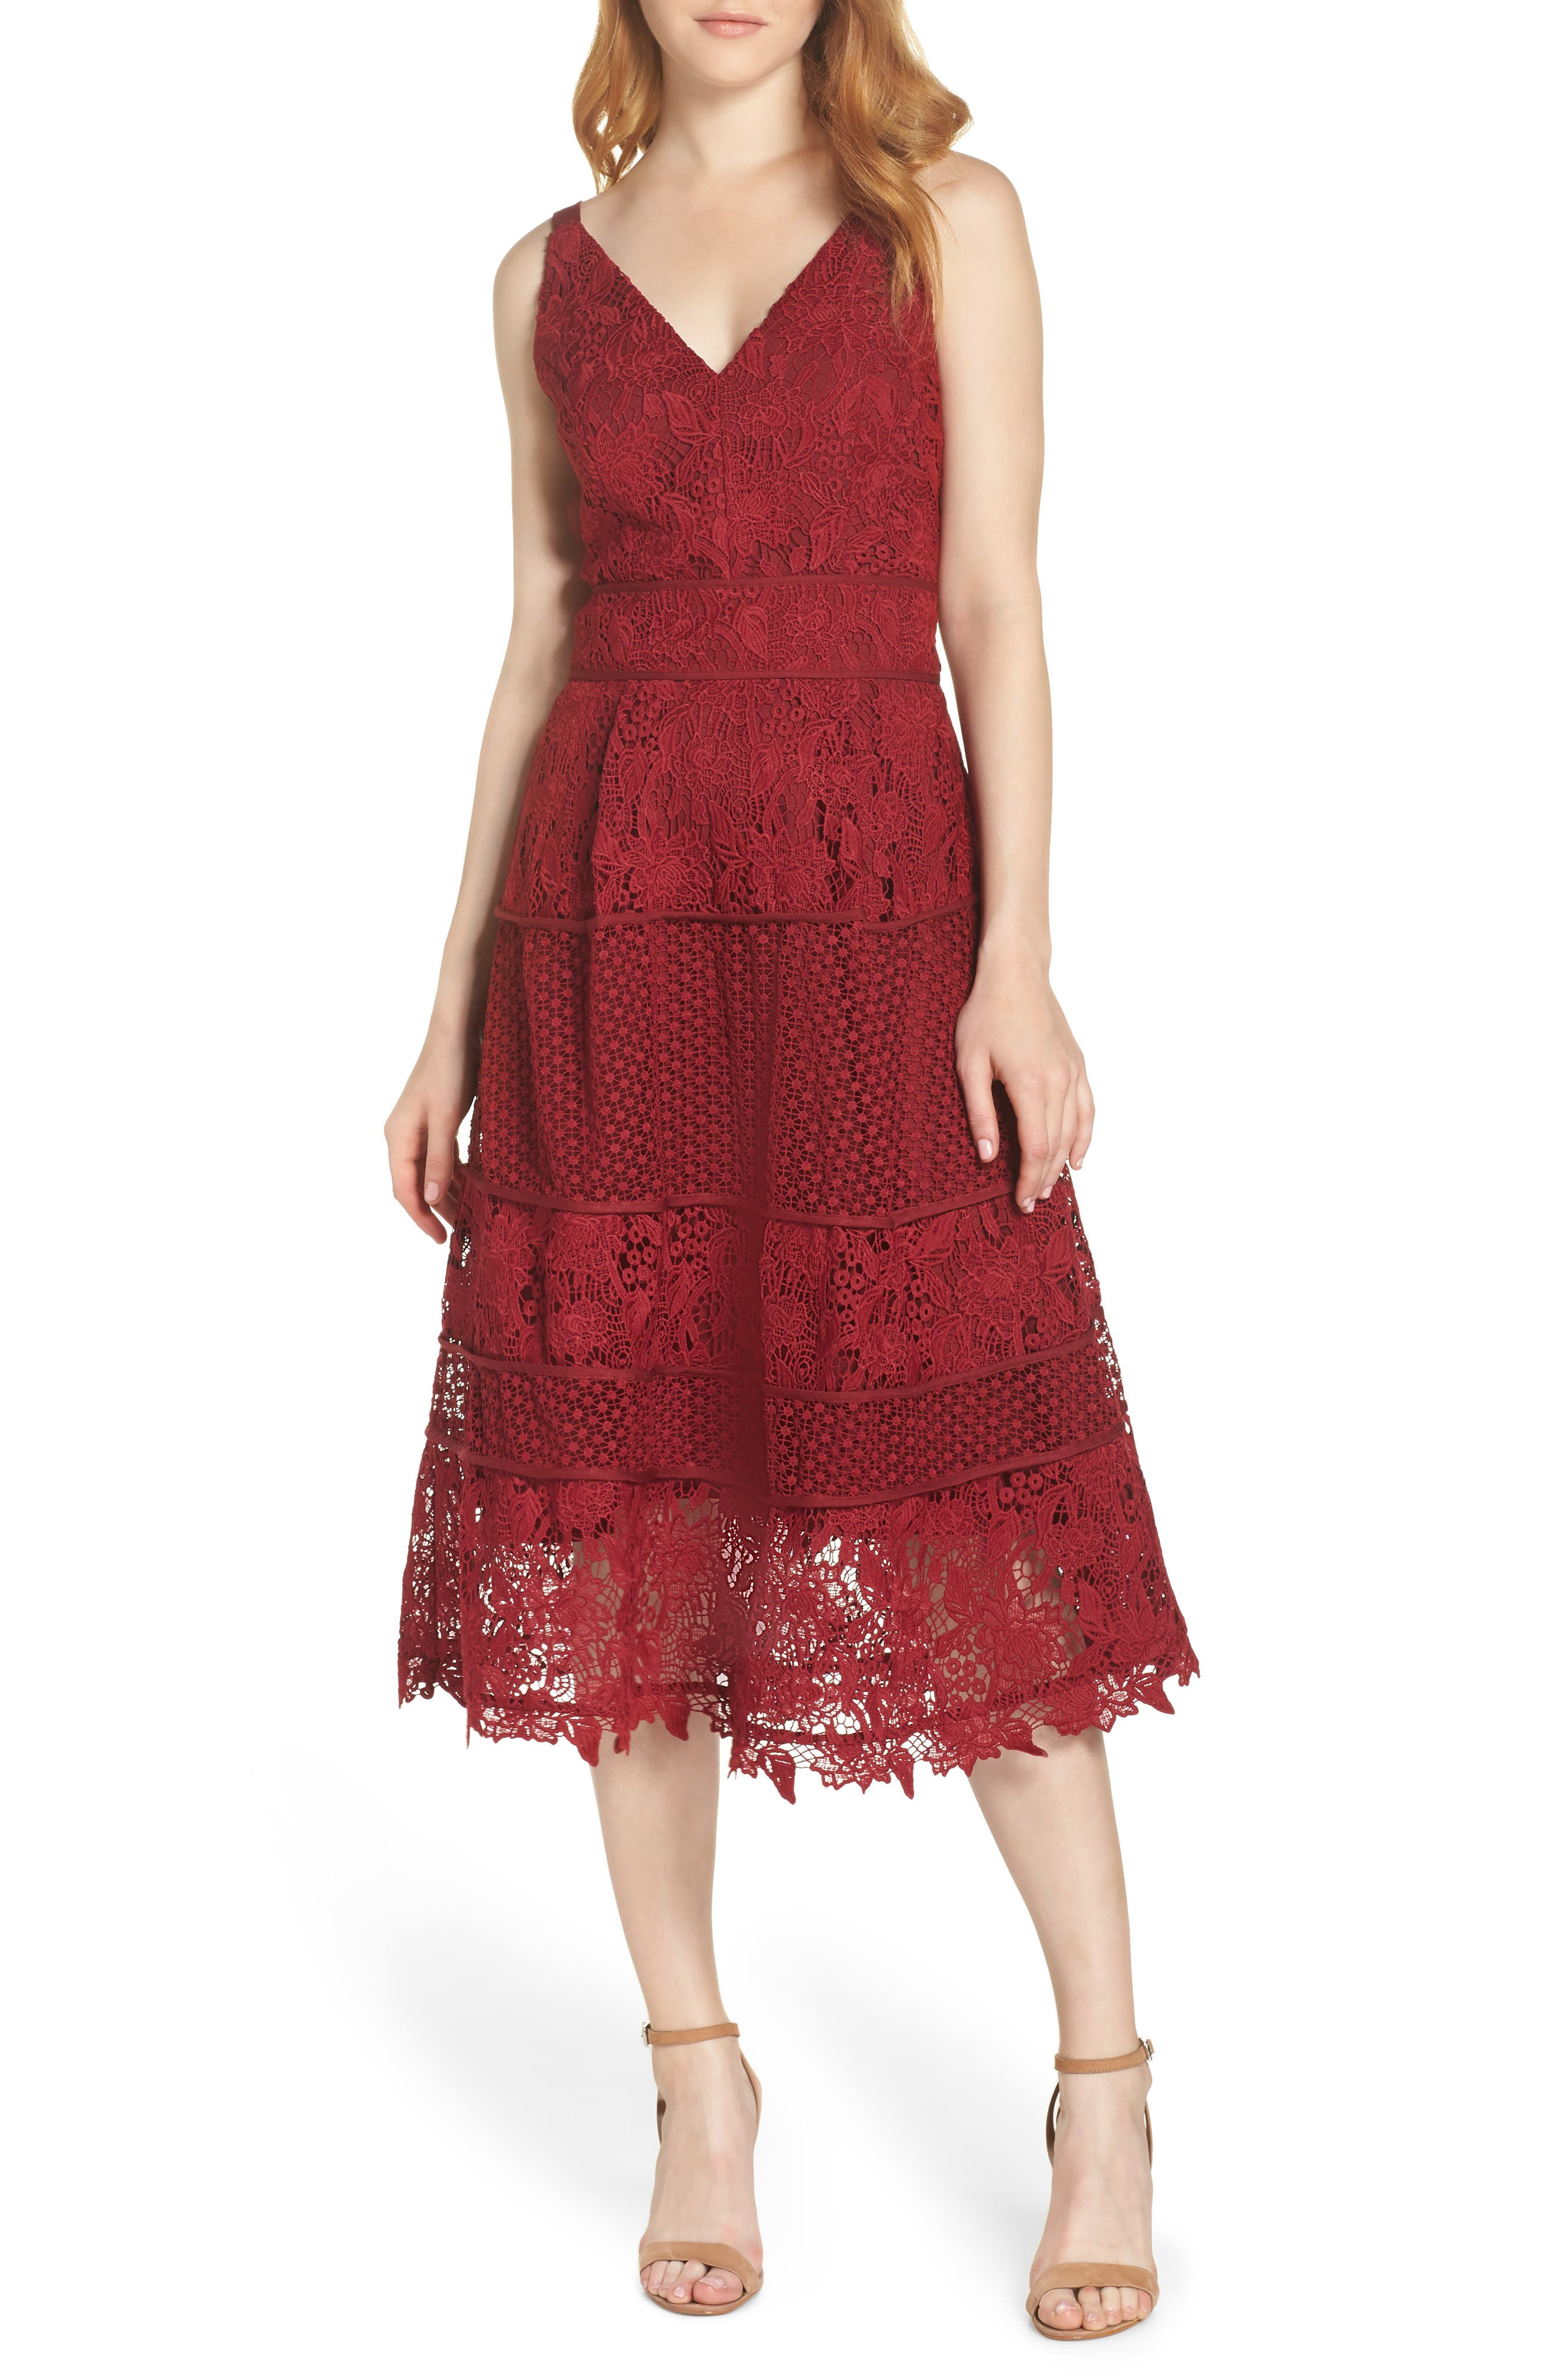 ADELYN RAE Beatrice Multi Style Lace Fit & Flare Dress in Berry